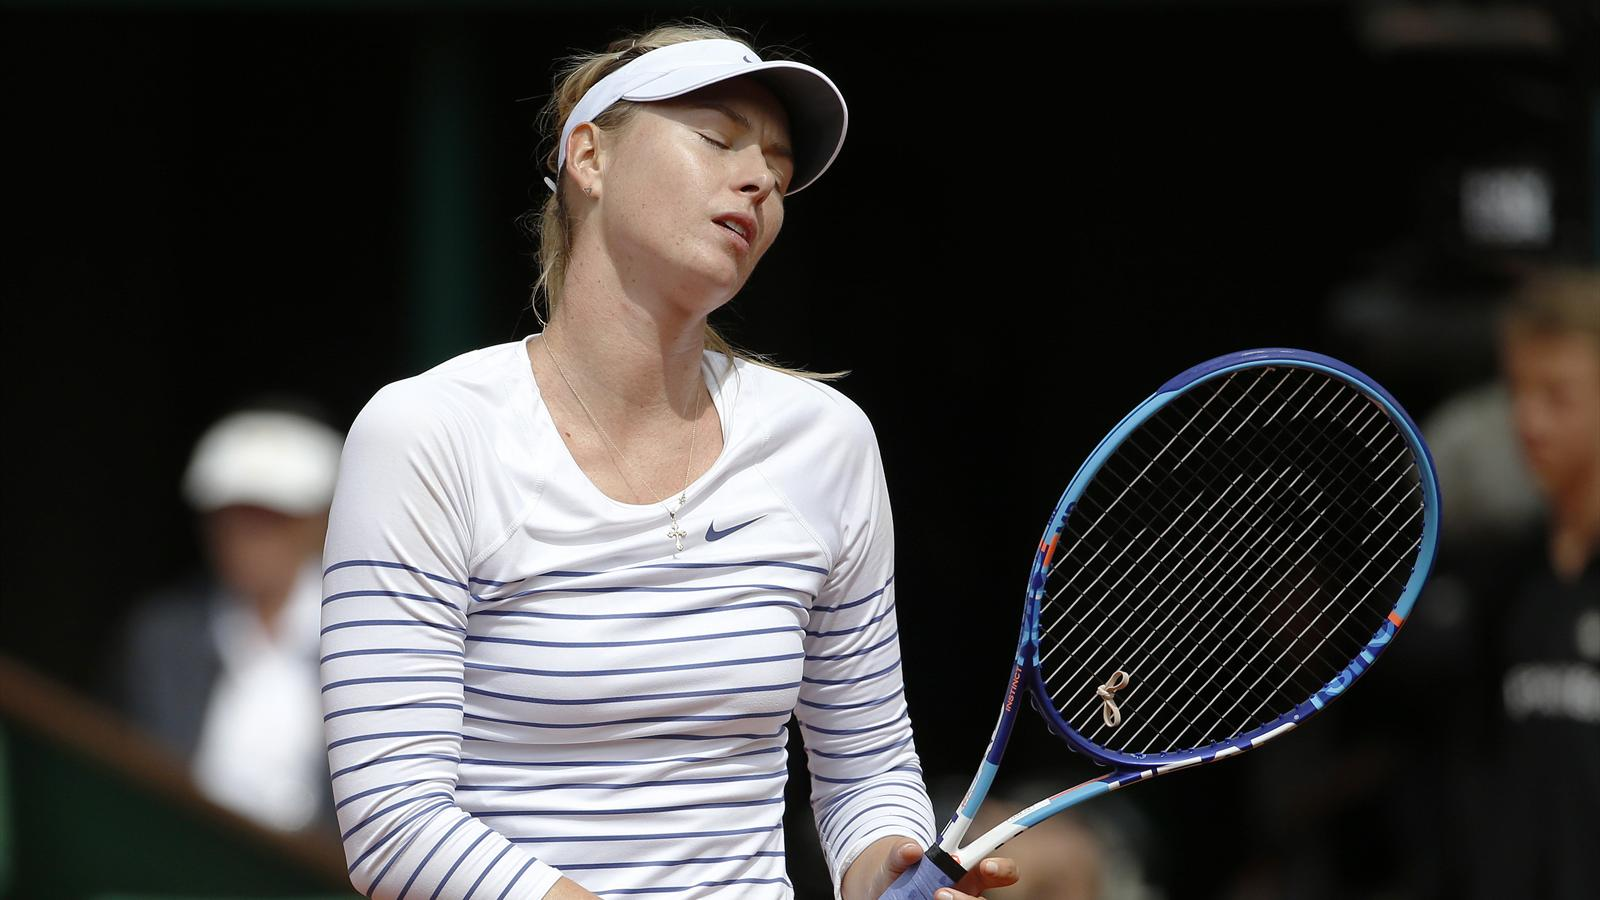 Maria Sharapova is knocked out of the French Open by Lucie Safarova